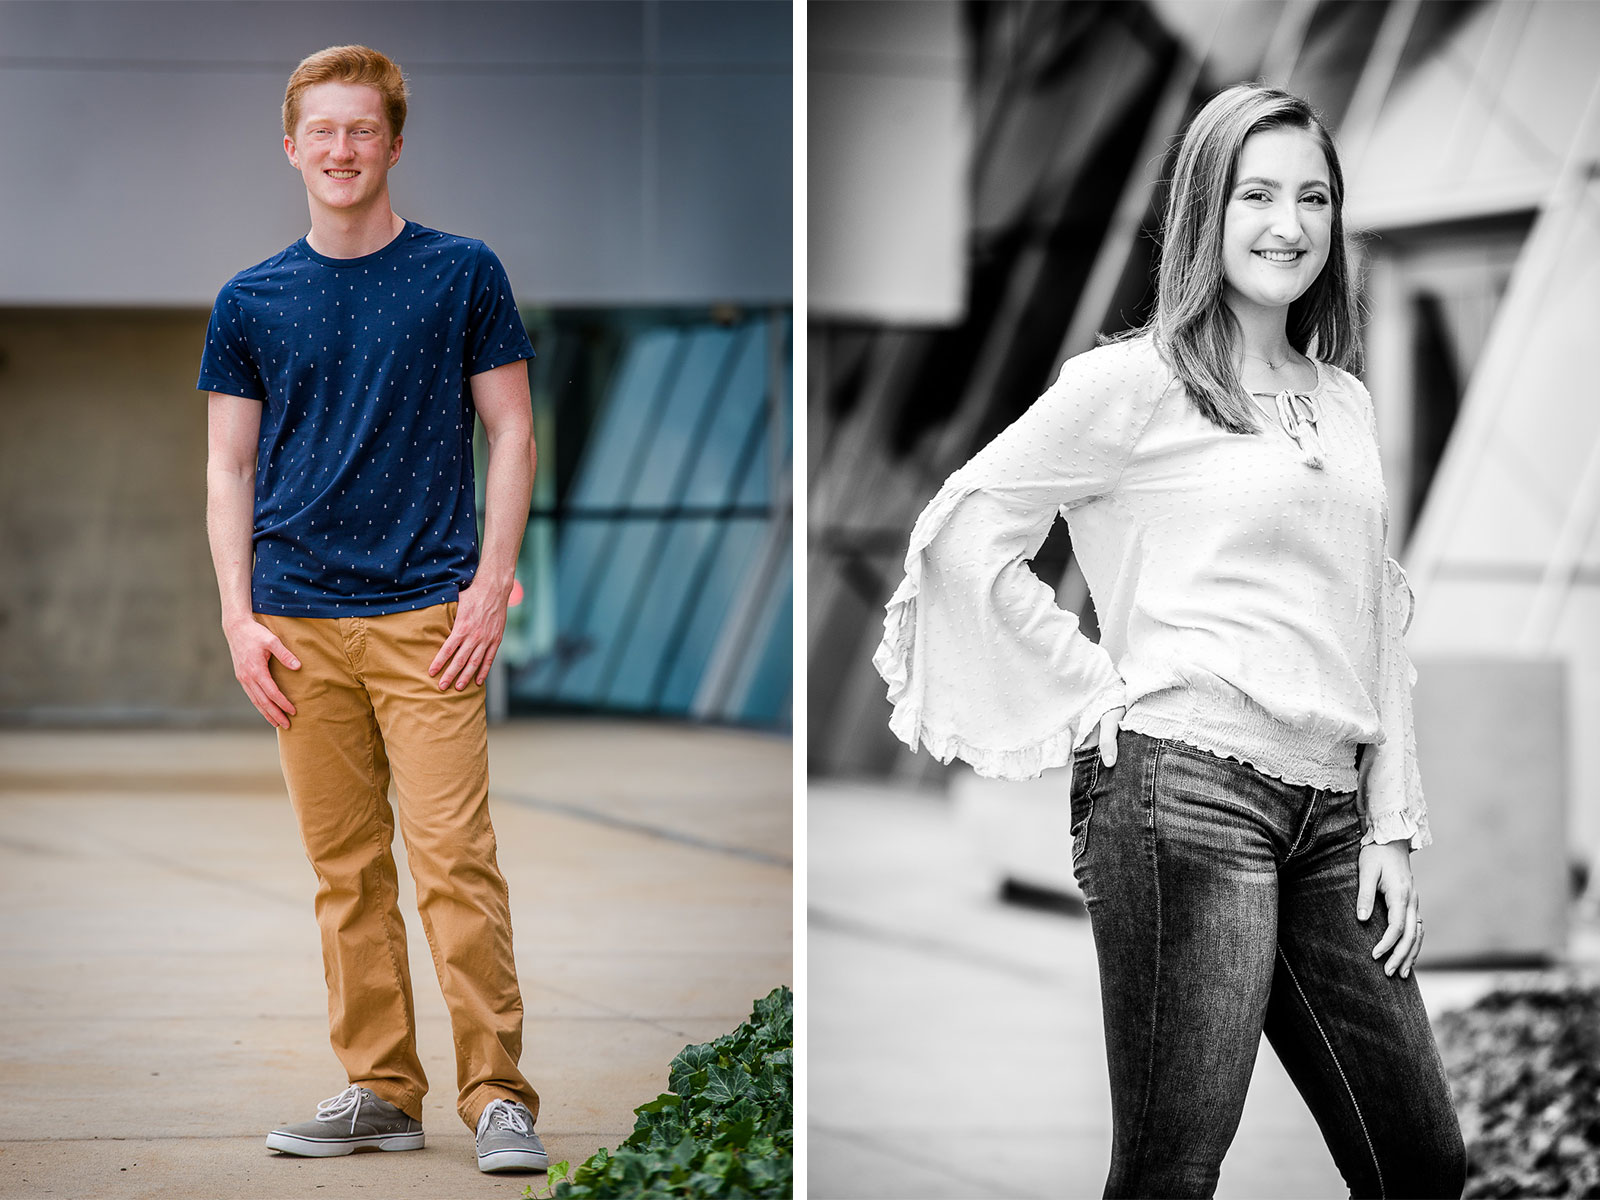 Eric_and_Christy_Photography_Blog_Brenna_Dray_Grad-26-28